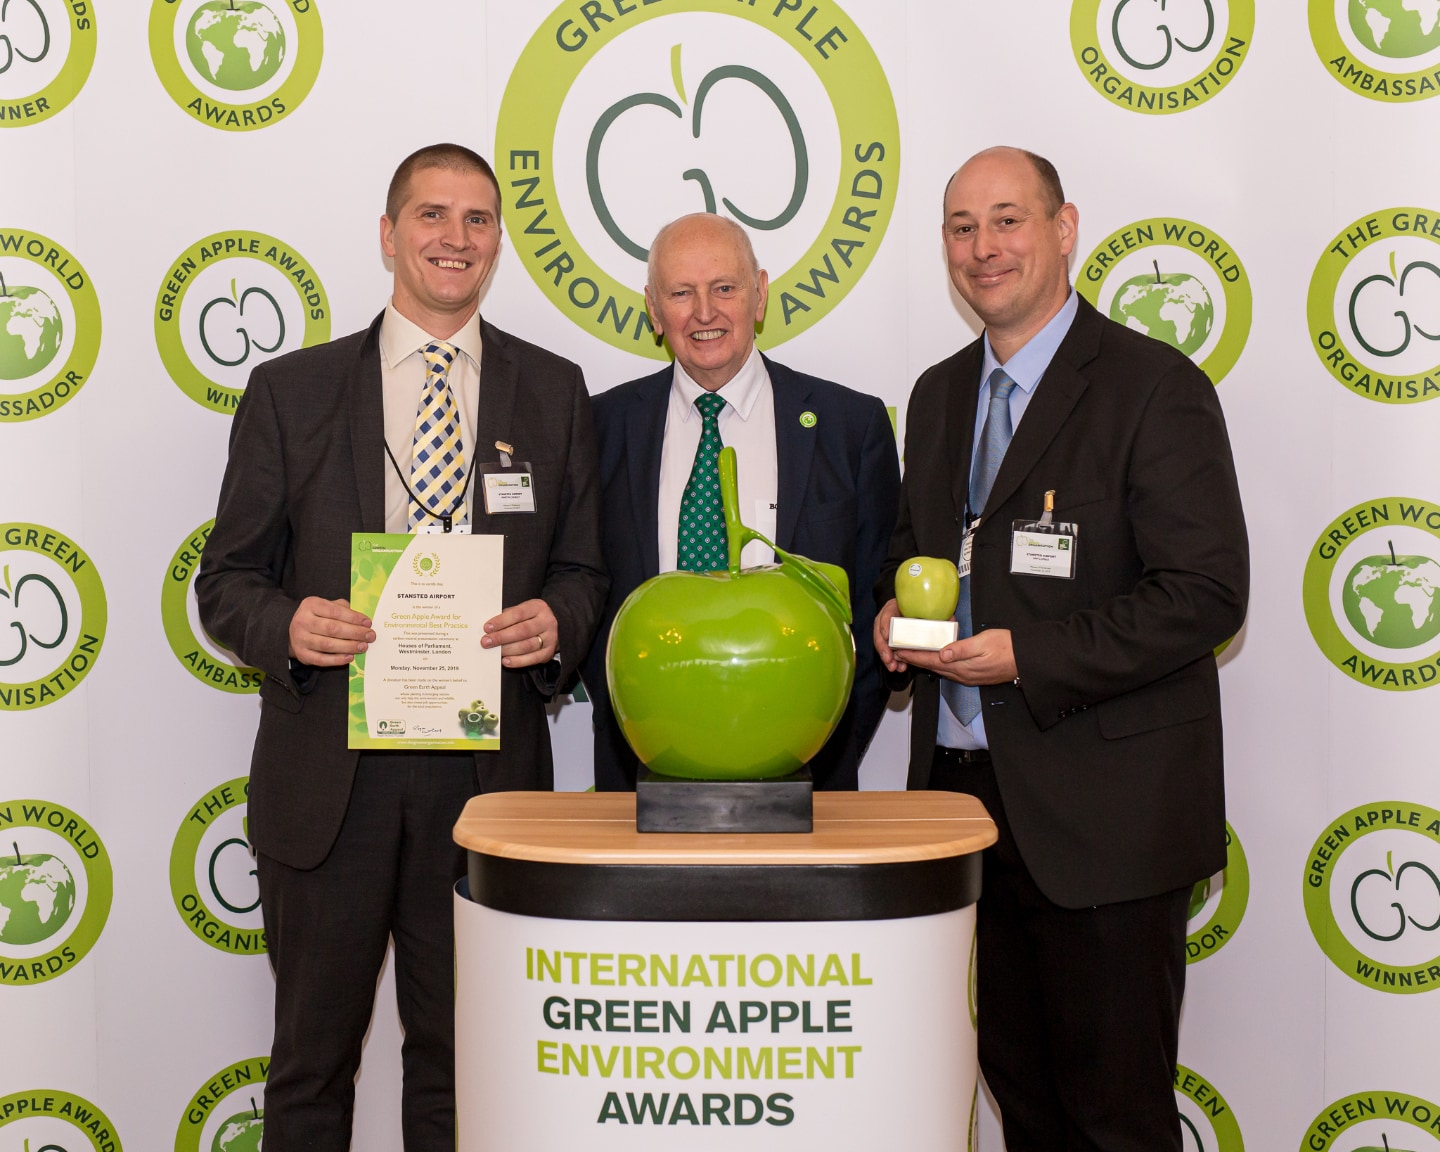 Gree Apple Environment Awards